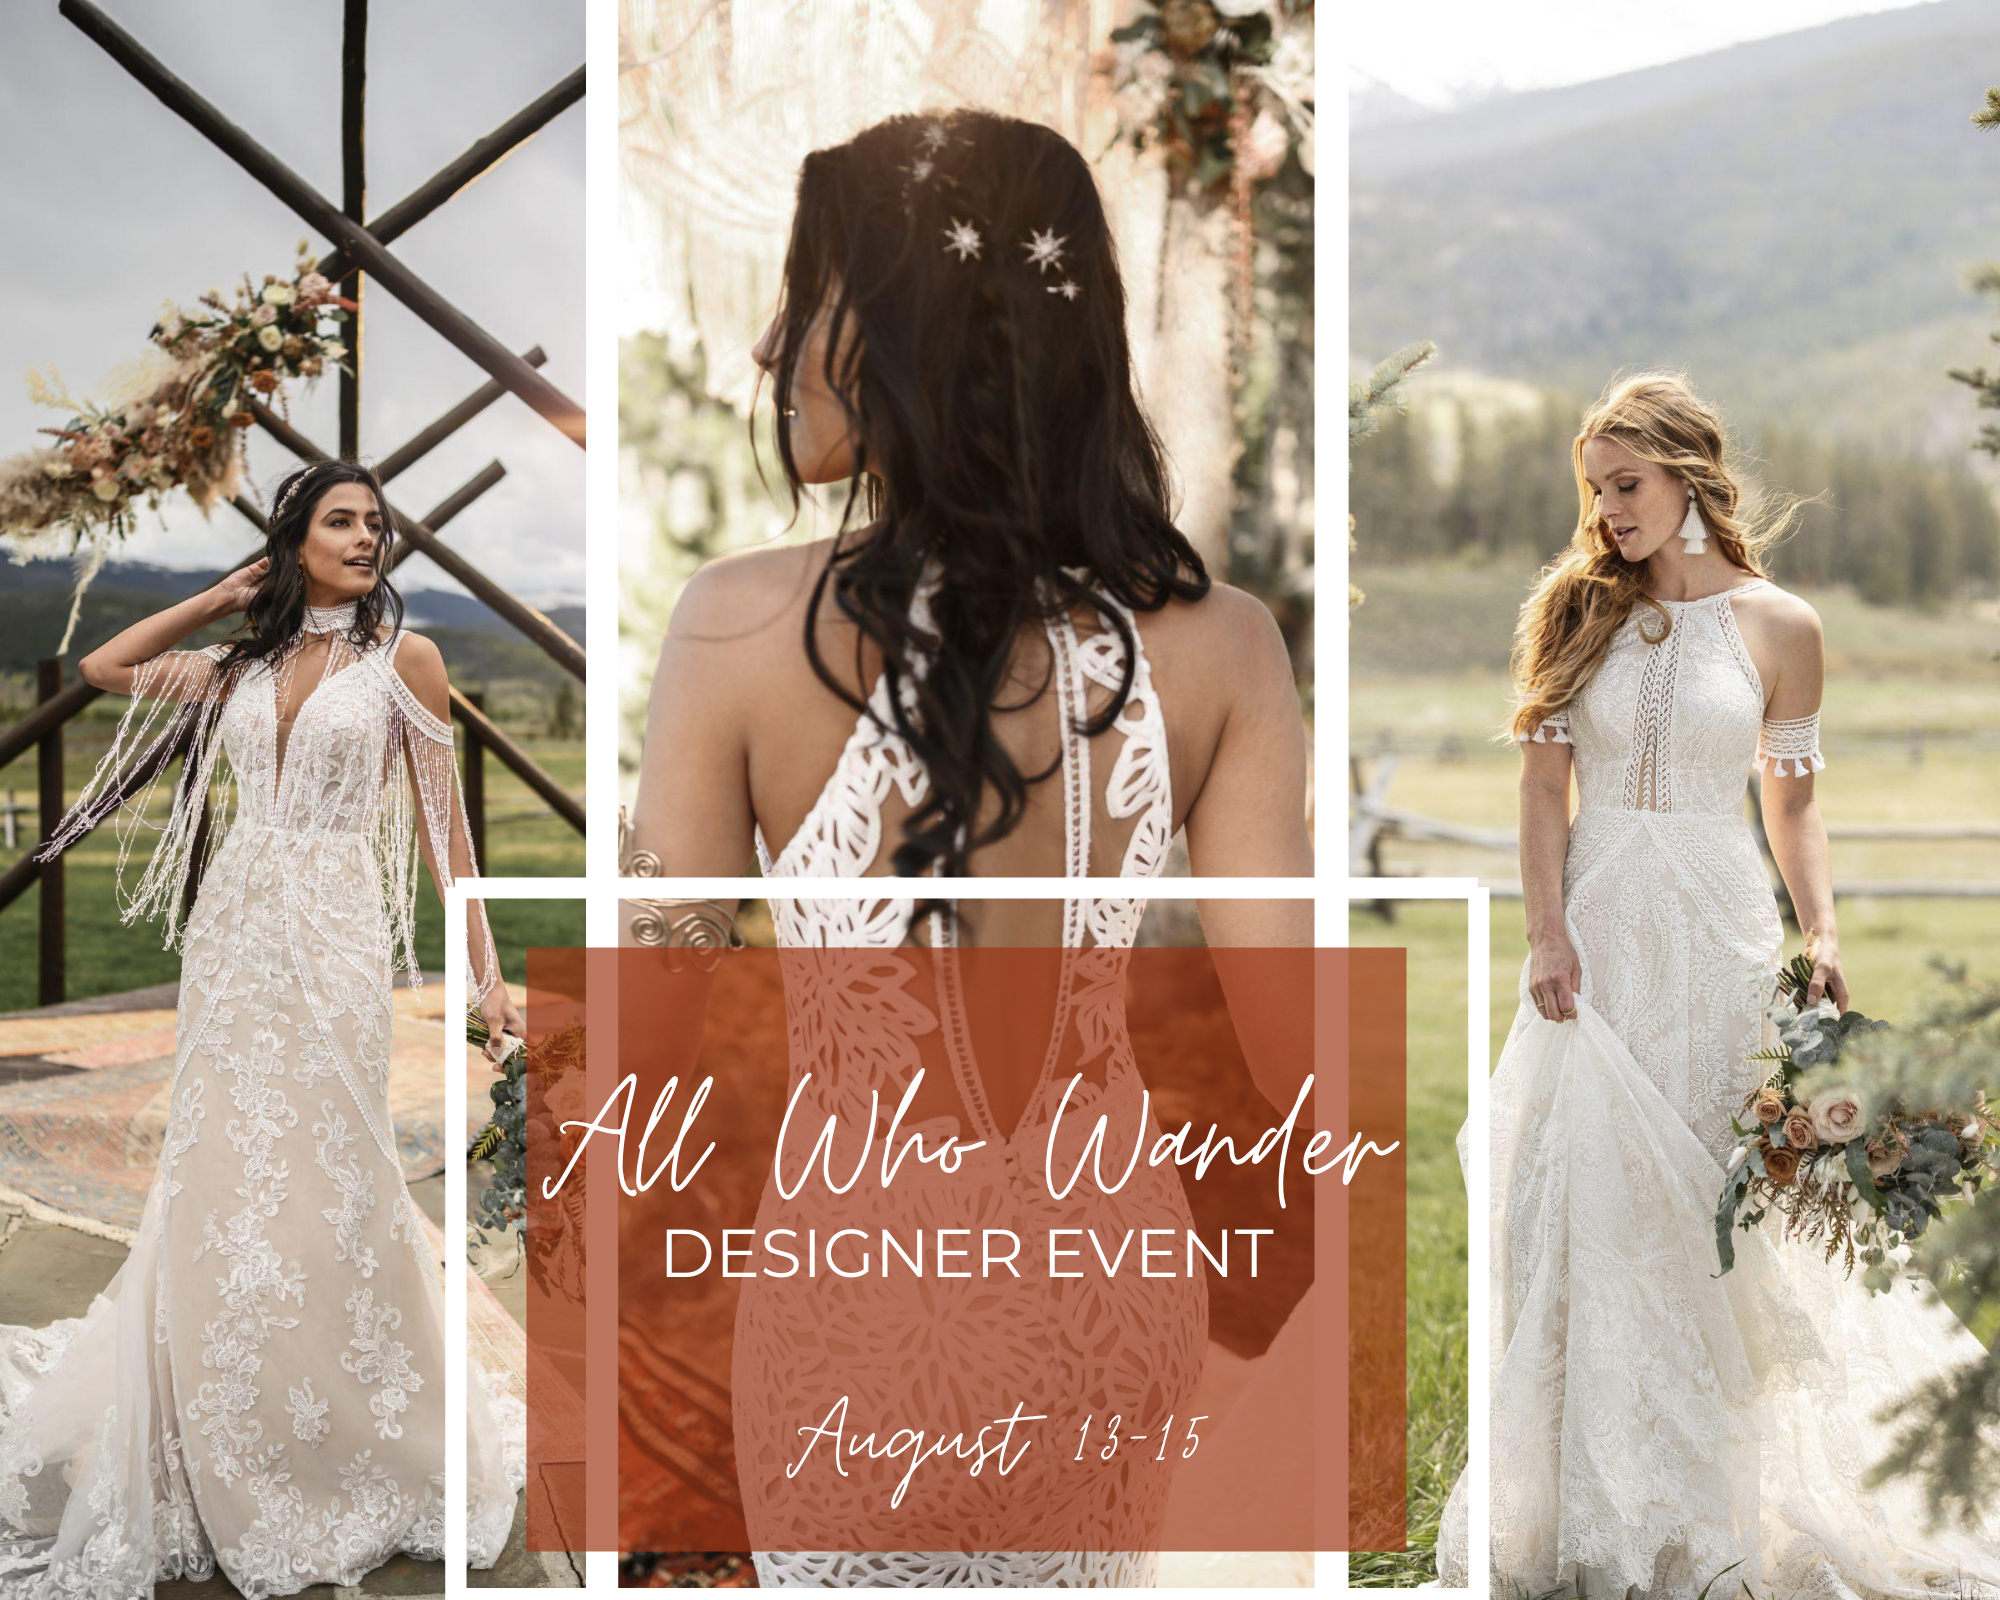 All Who Wander: Designer Event